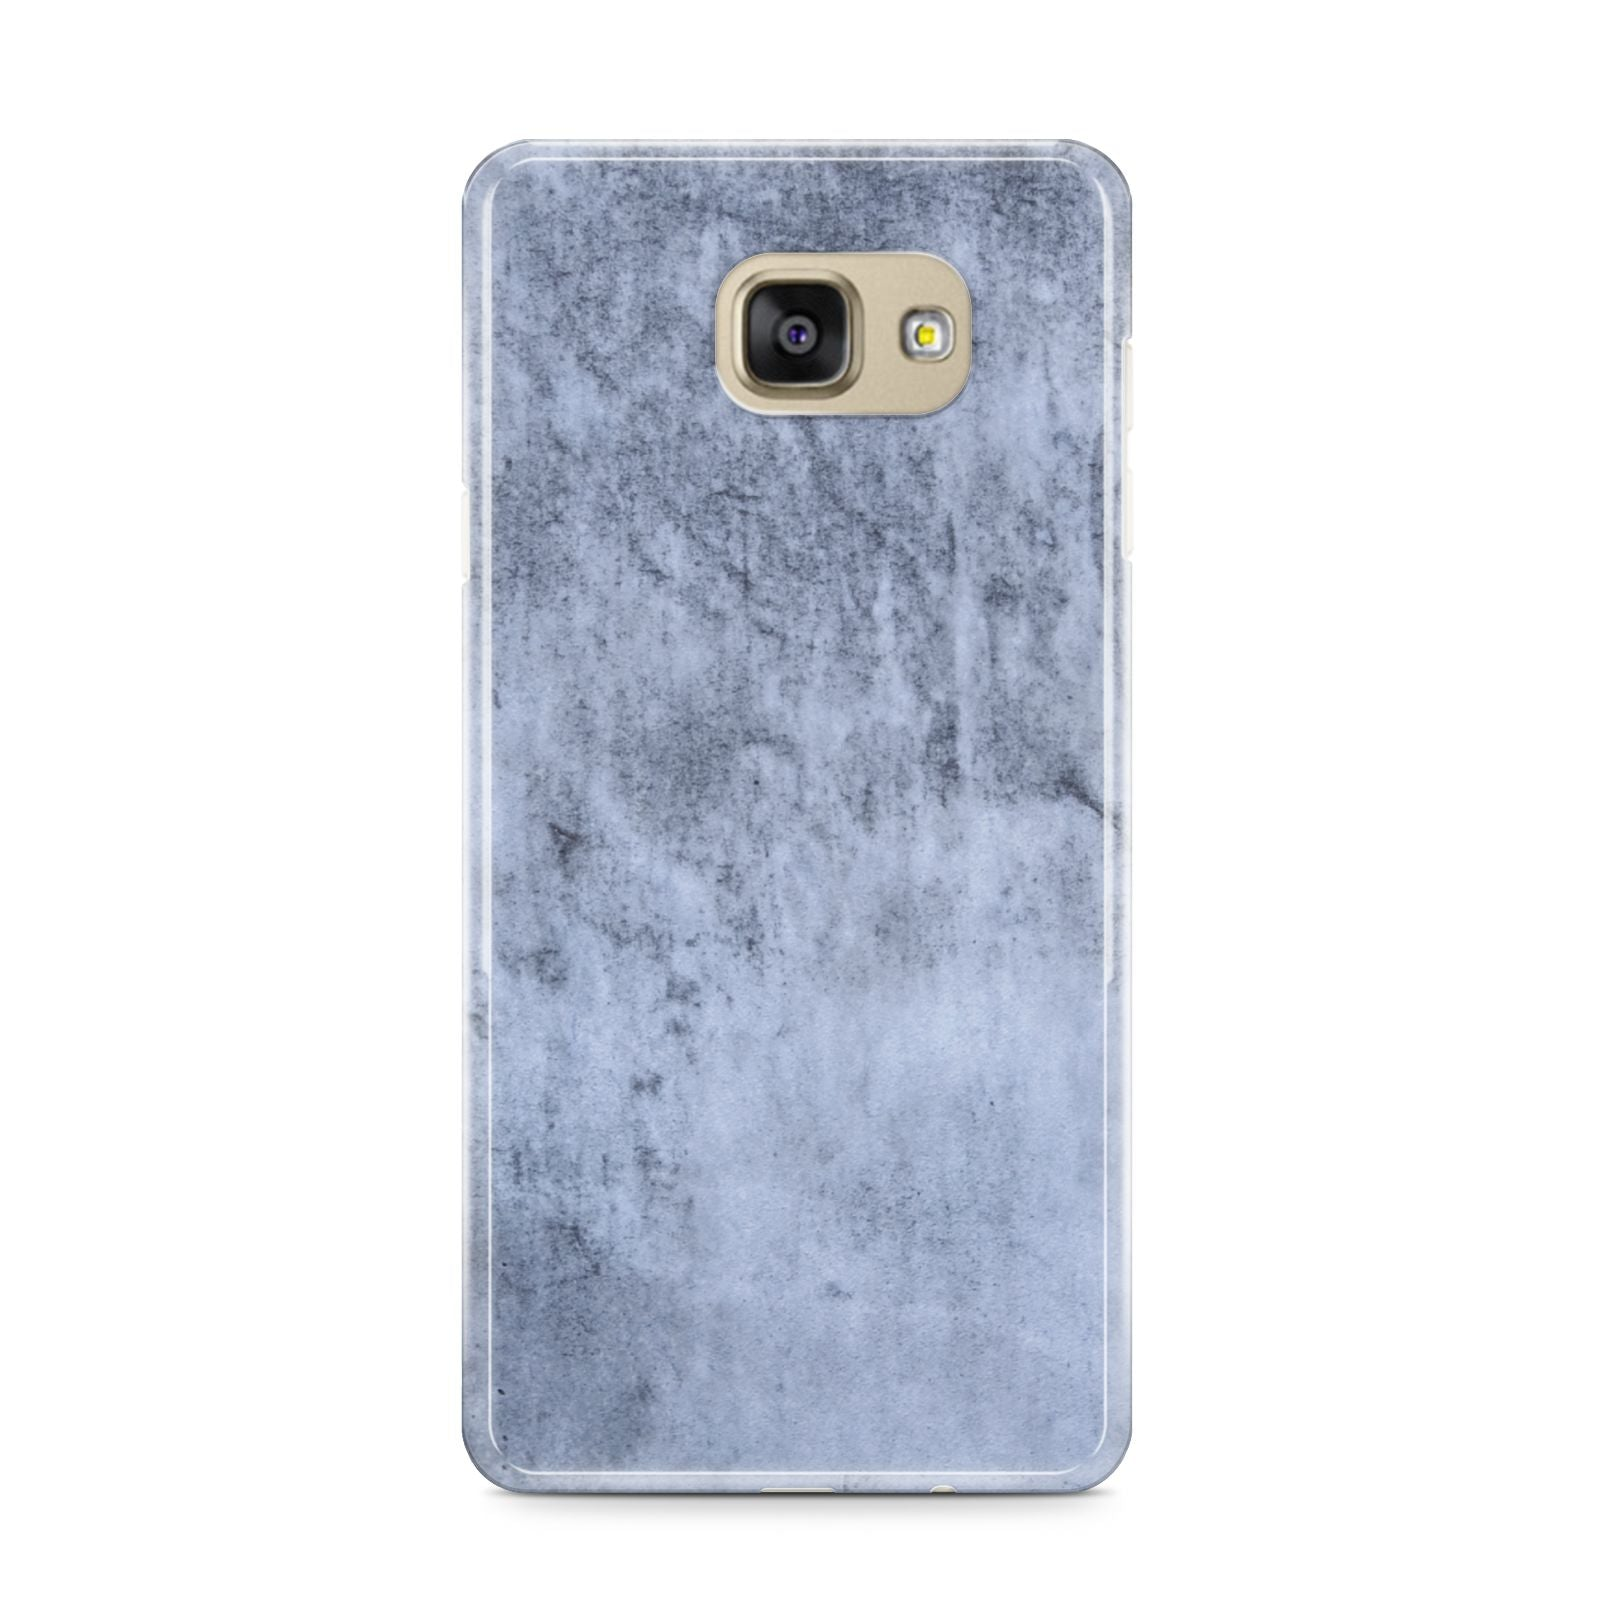 Faux Marble Dark Grey Samsung Galaxy A9 2016 Case on gold phone